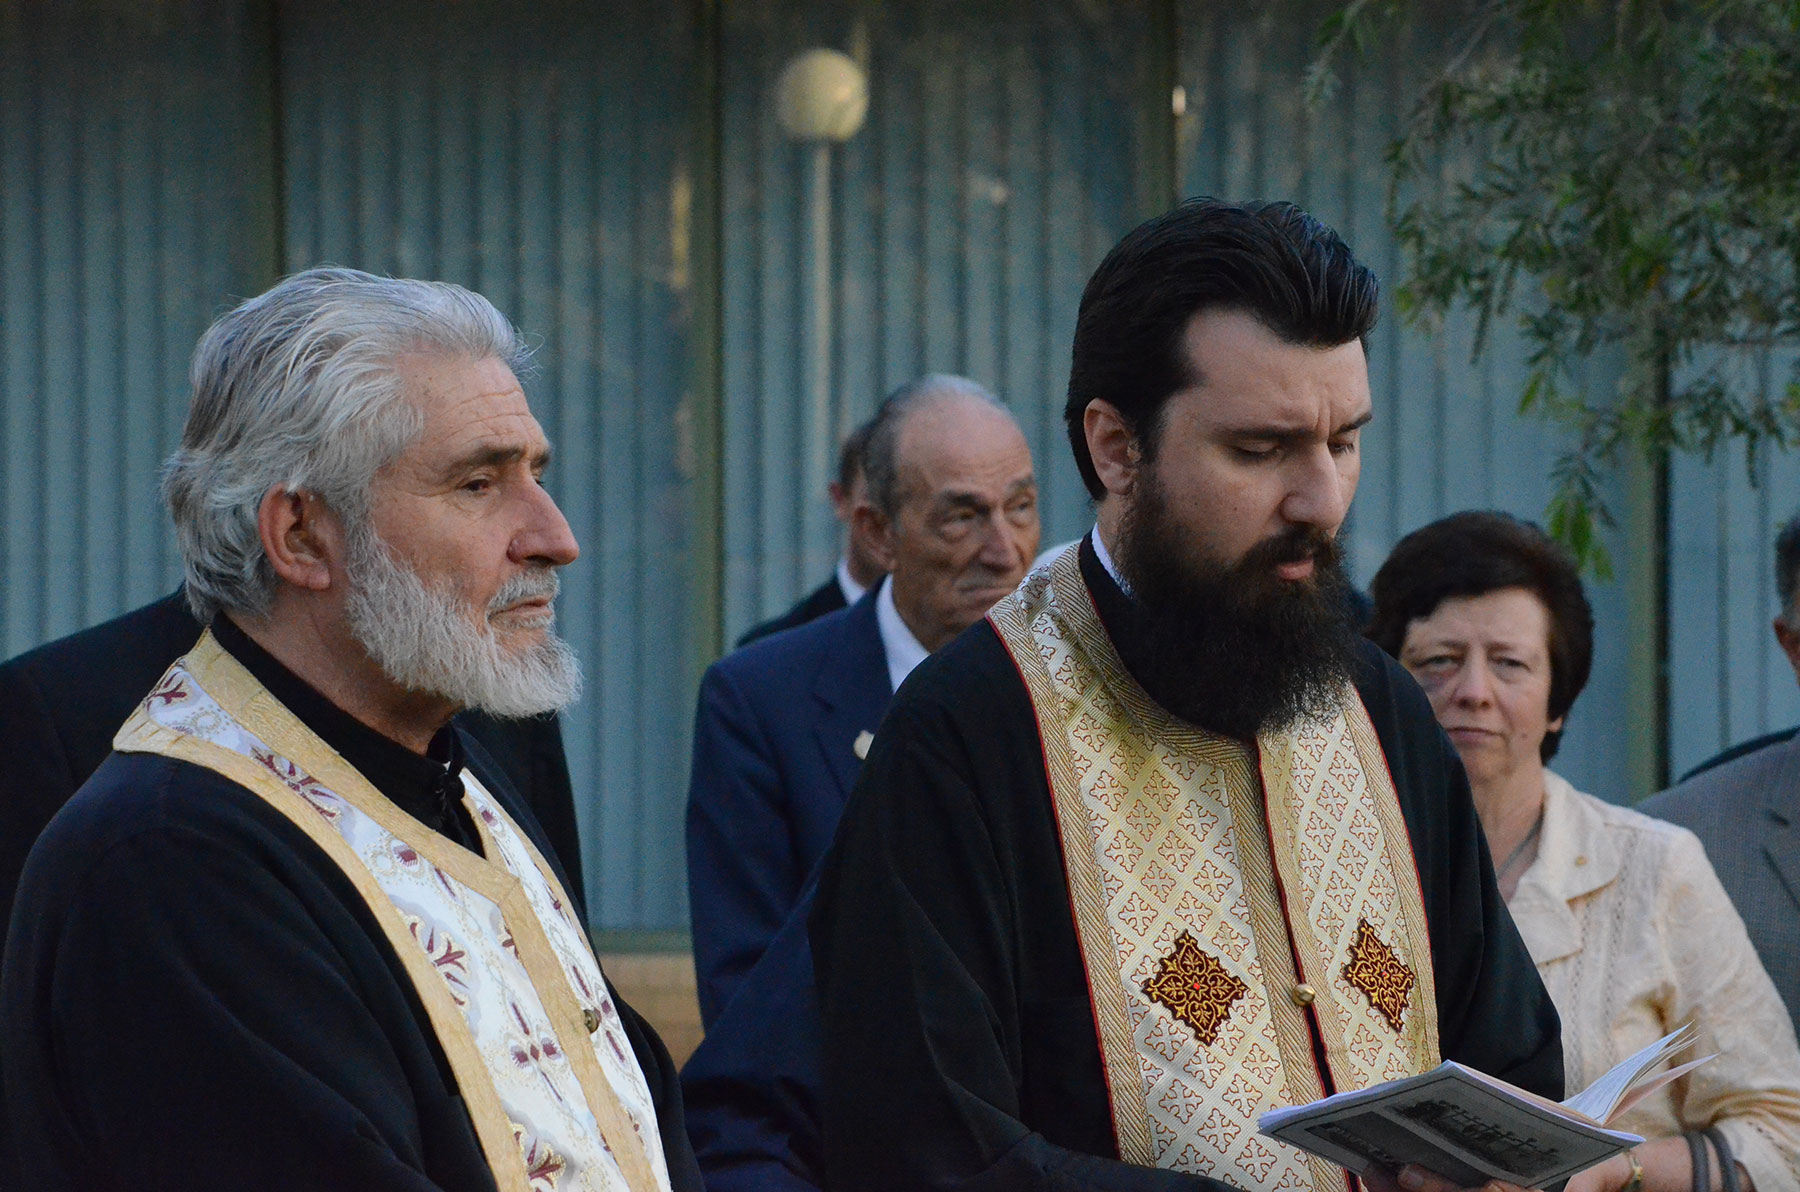 07 Greek Orthodox Prayer Blessing at Lamia Barracks Commemoration 16 Sept. 2011